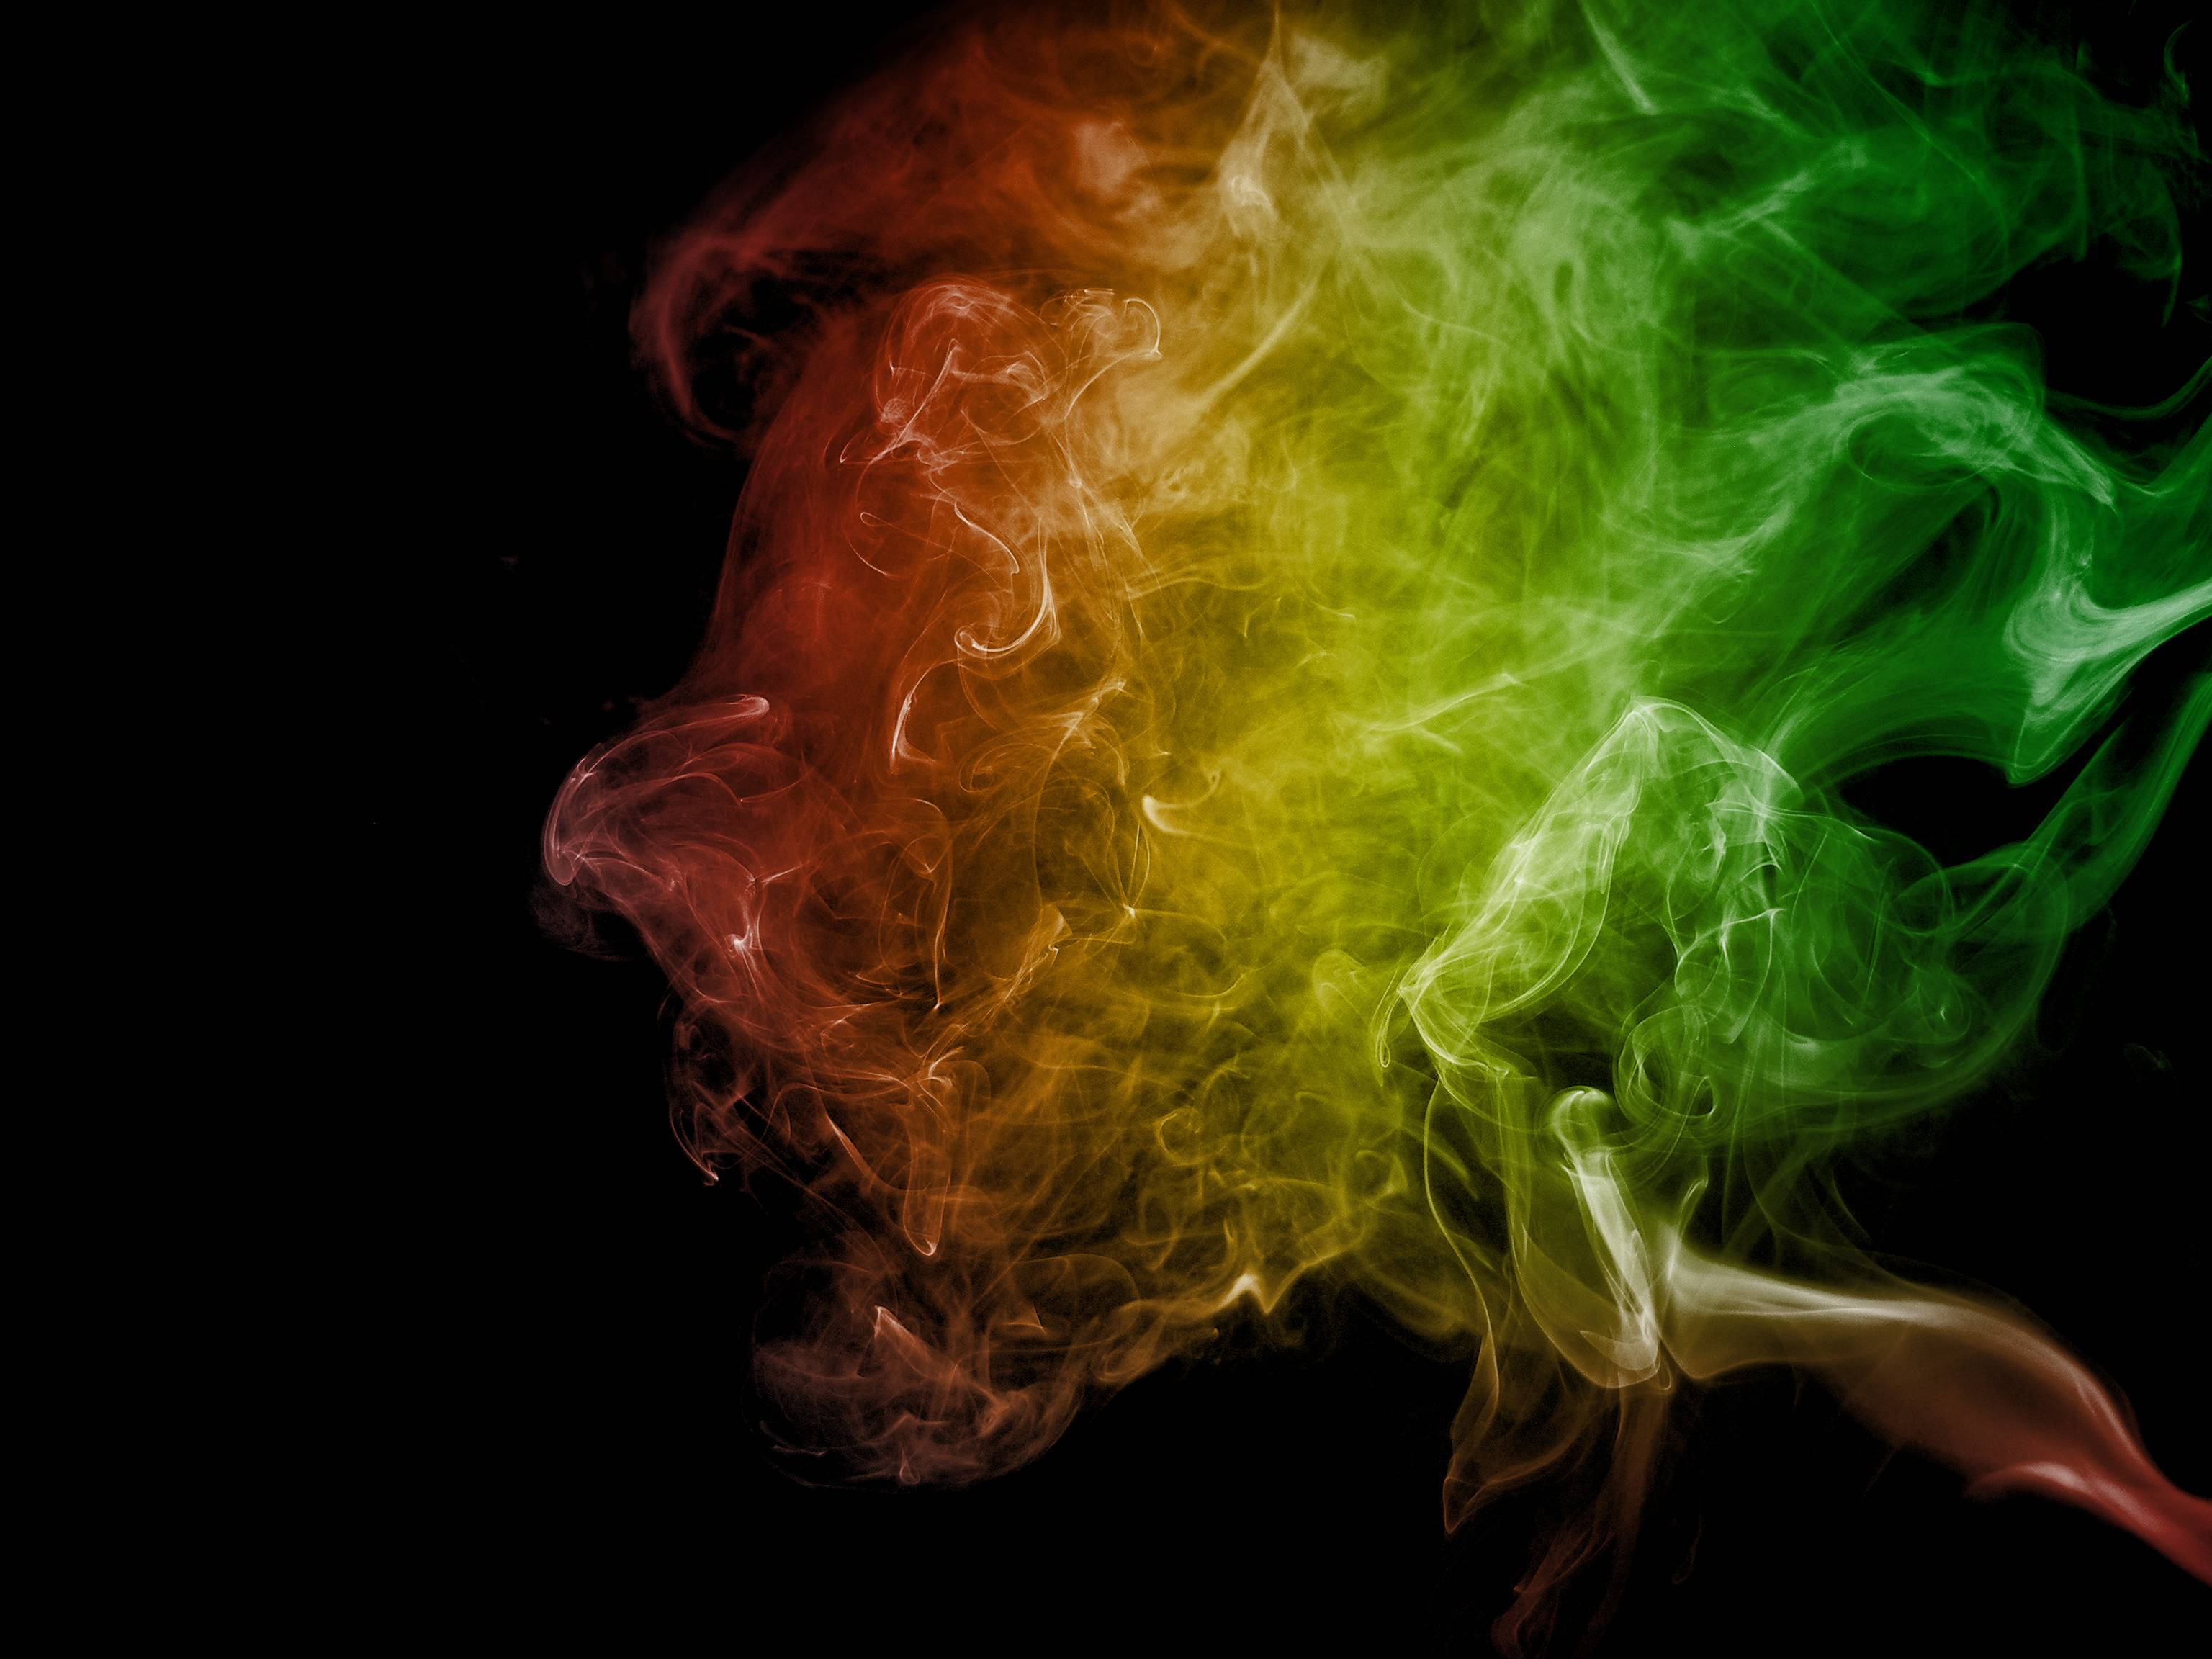 rasta smoke wallpaper moving - photo #16